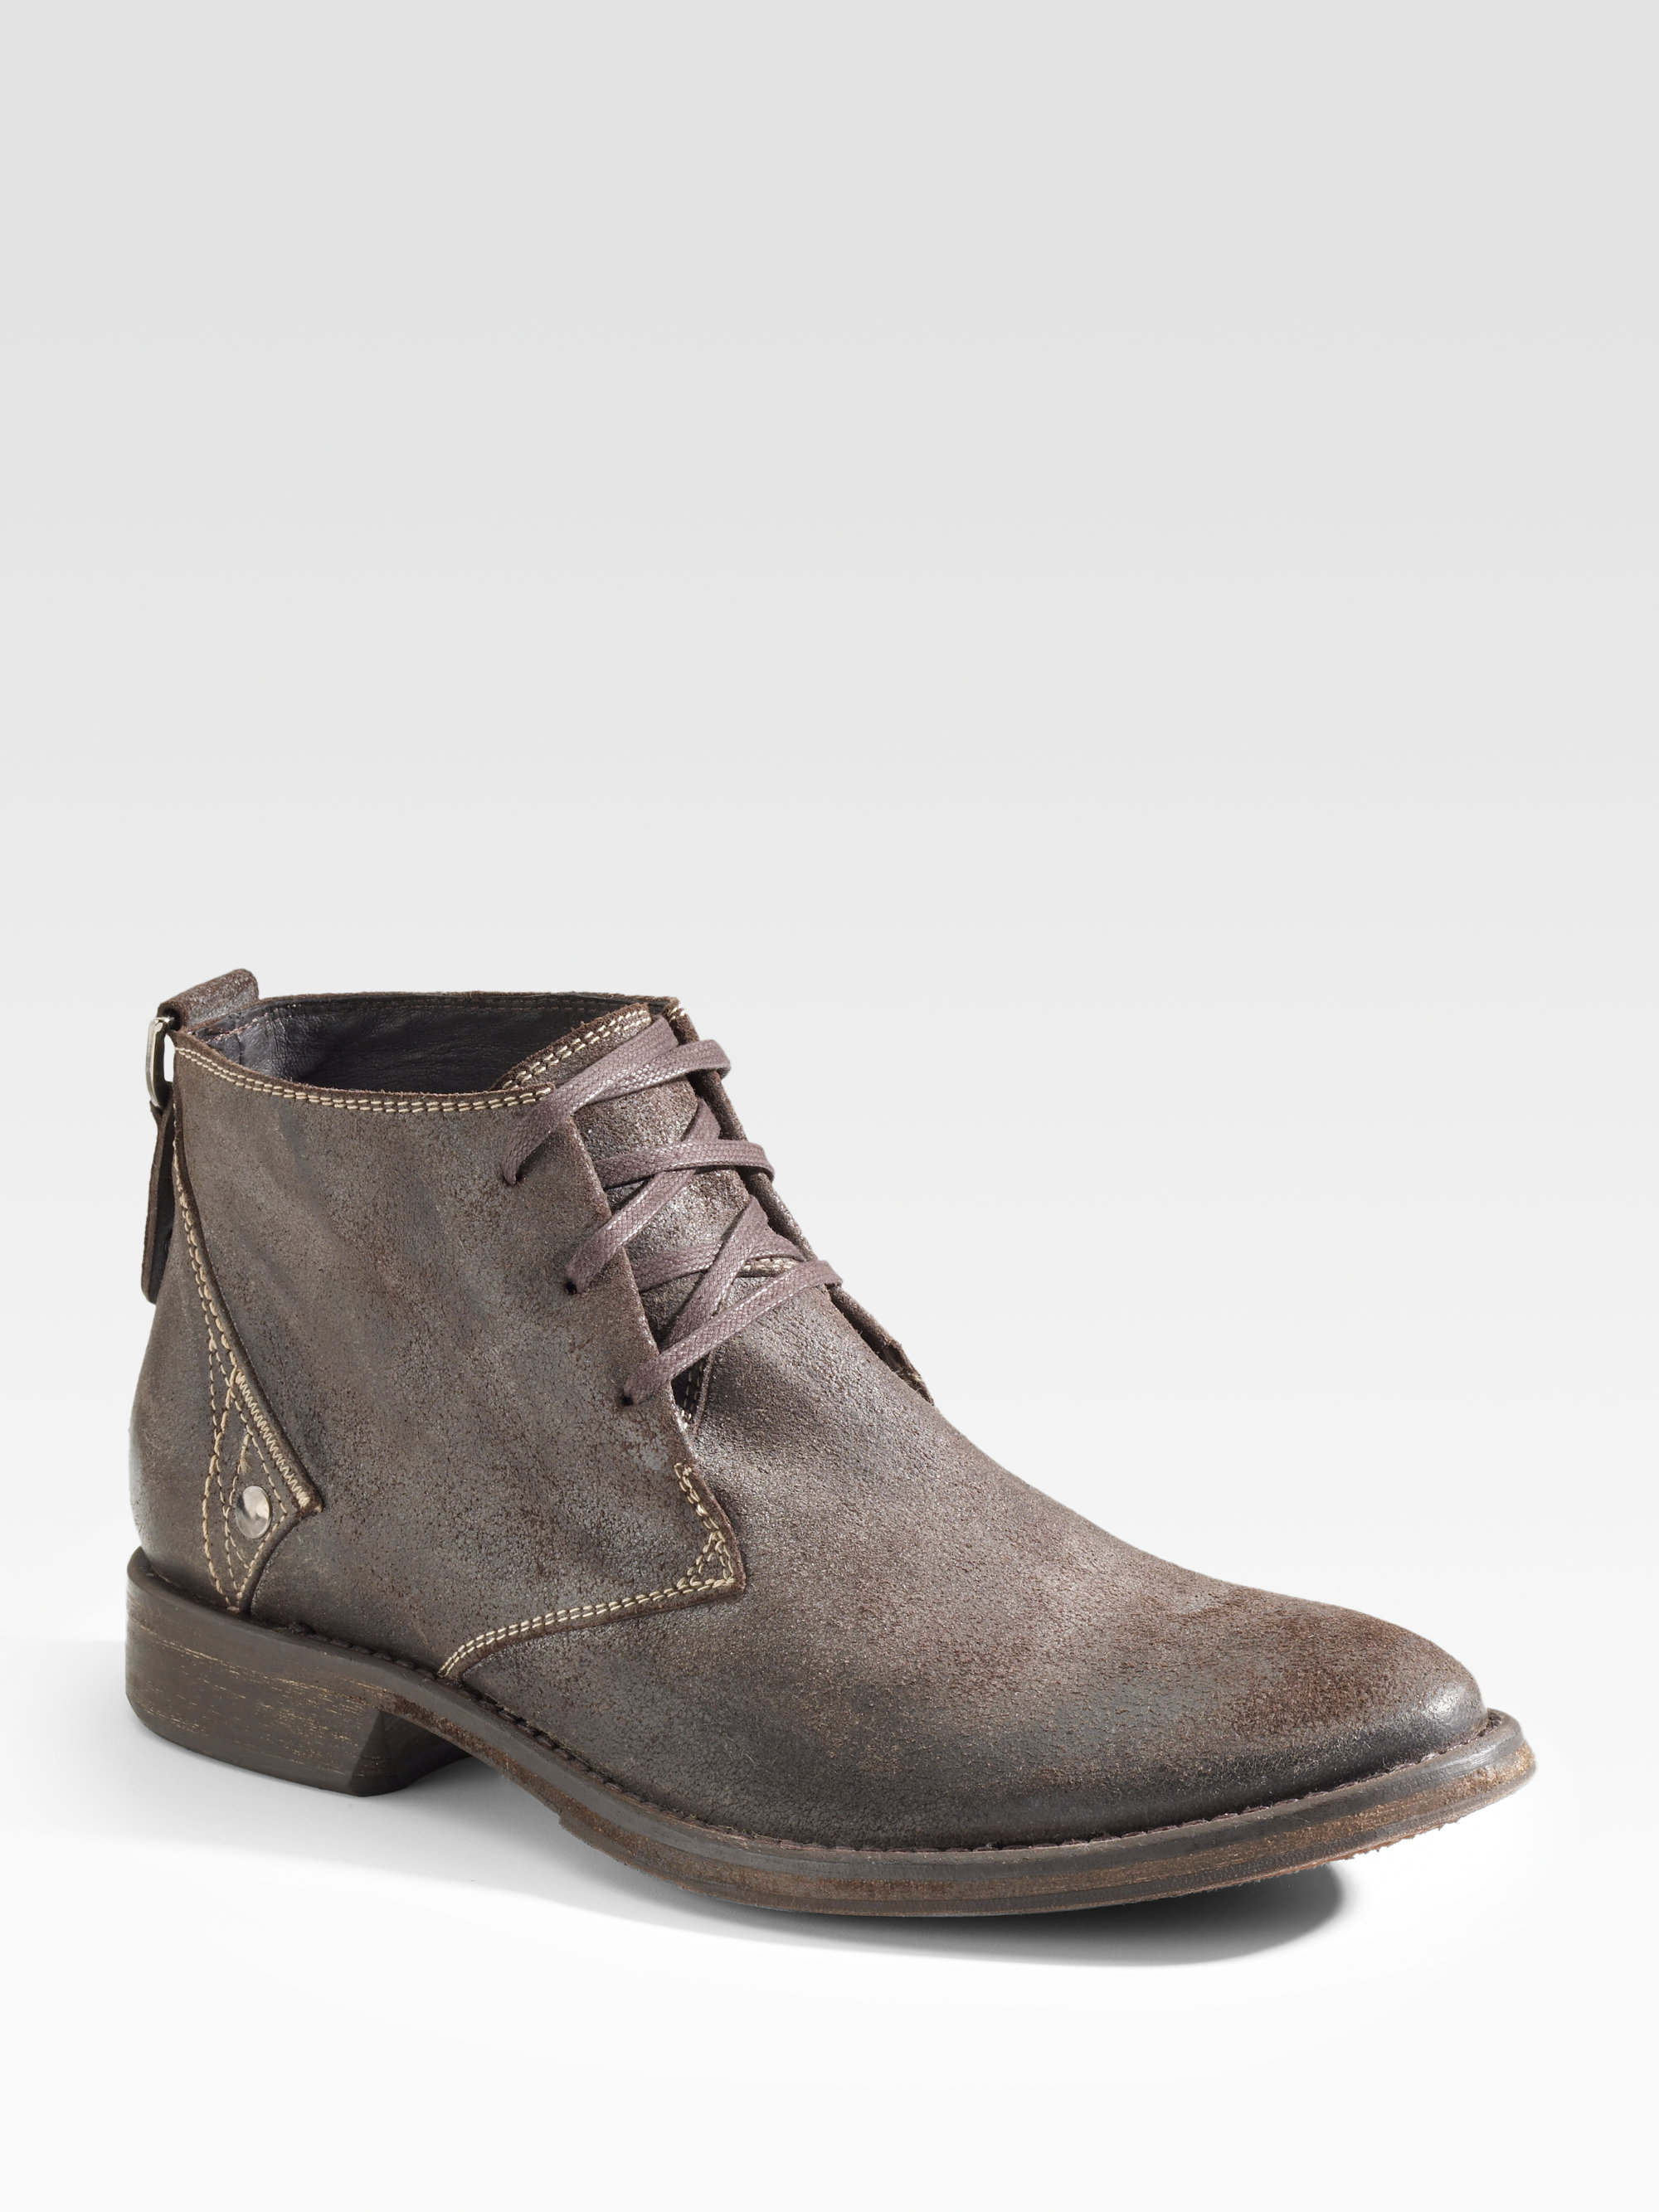 Diesel Plucky Ankle Boots In Brown For Men Lyst